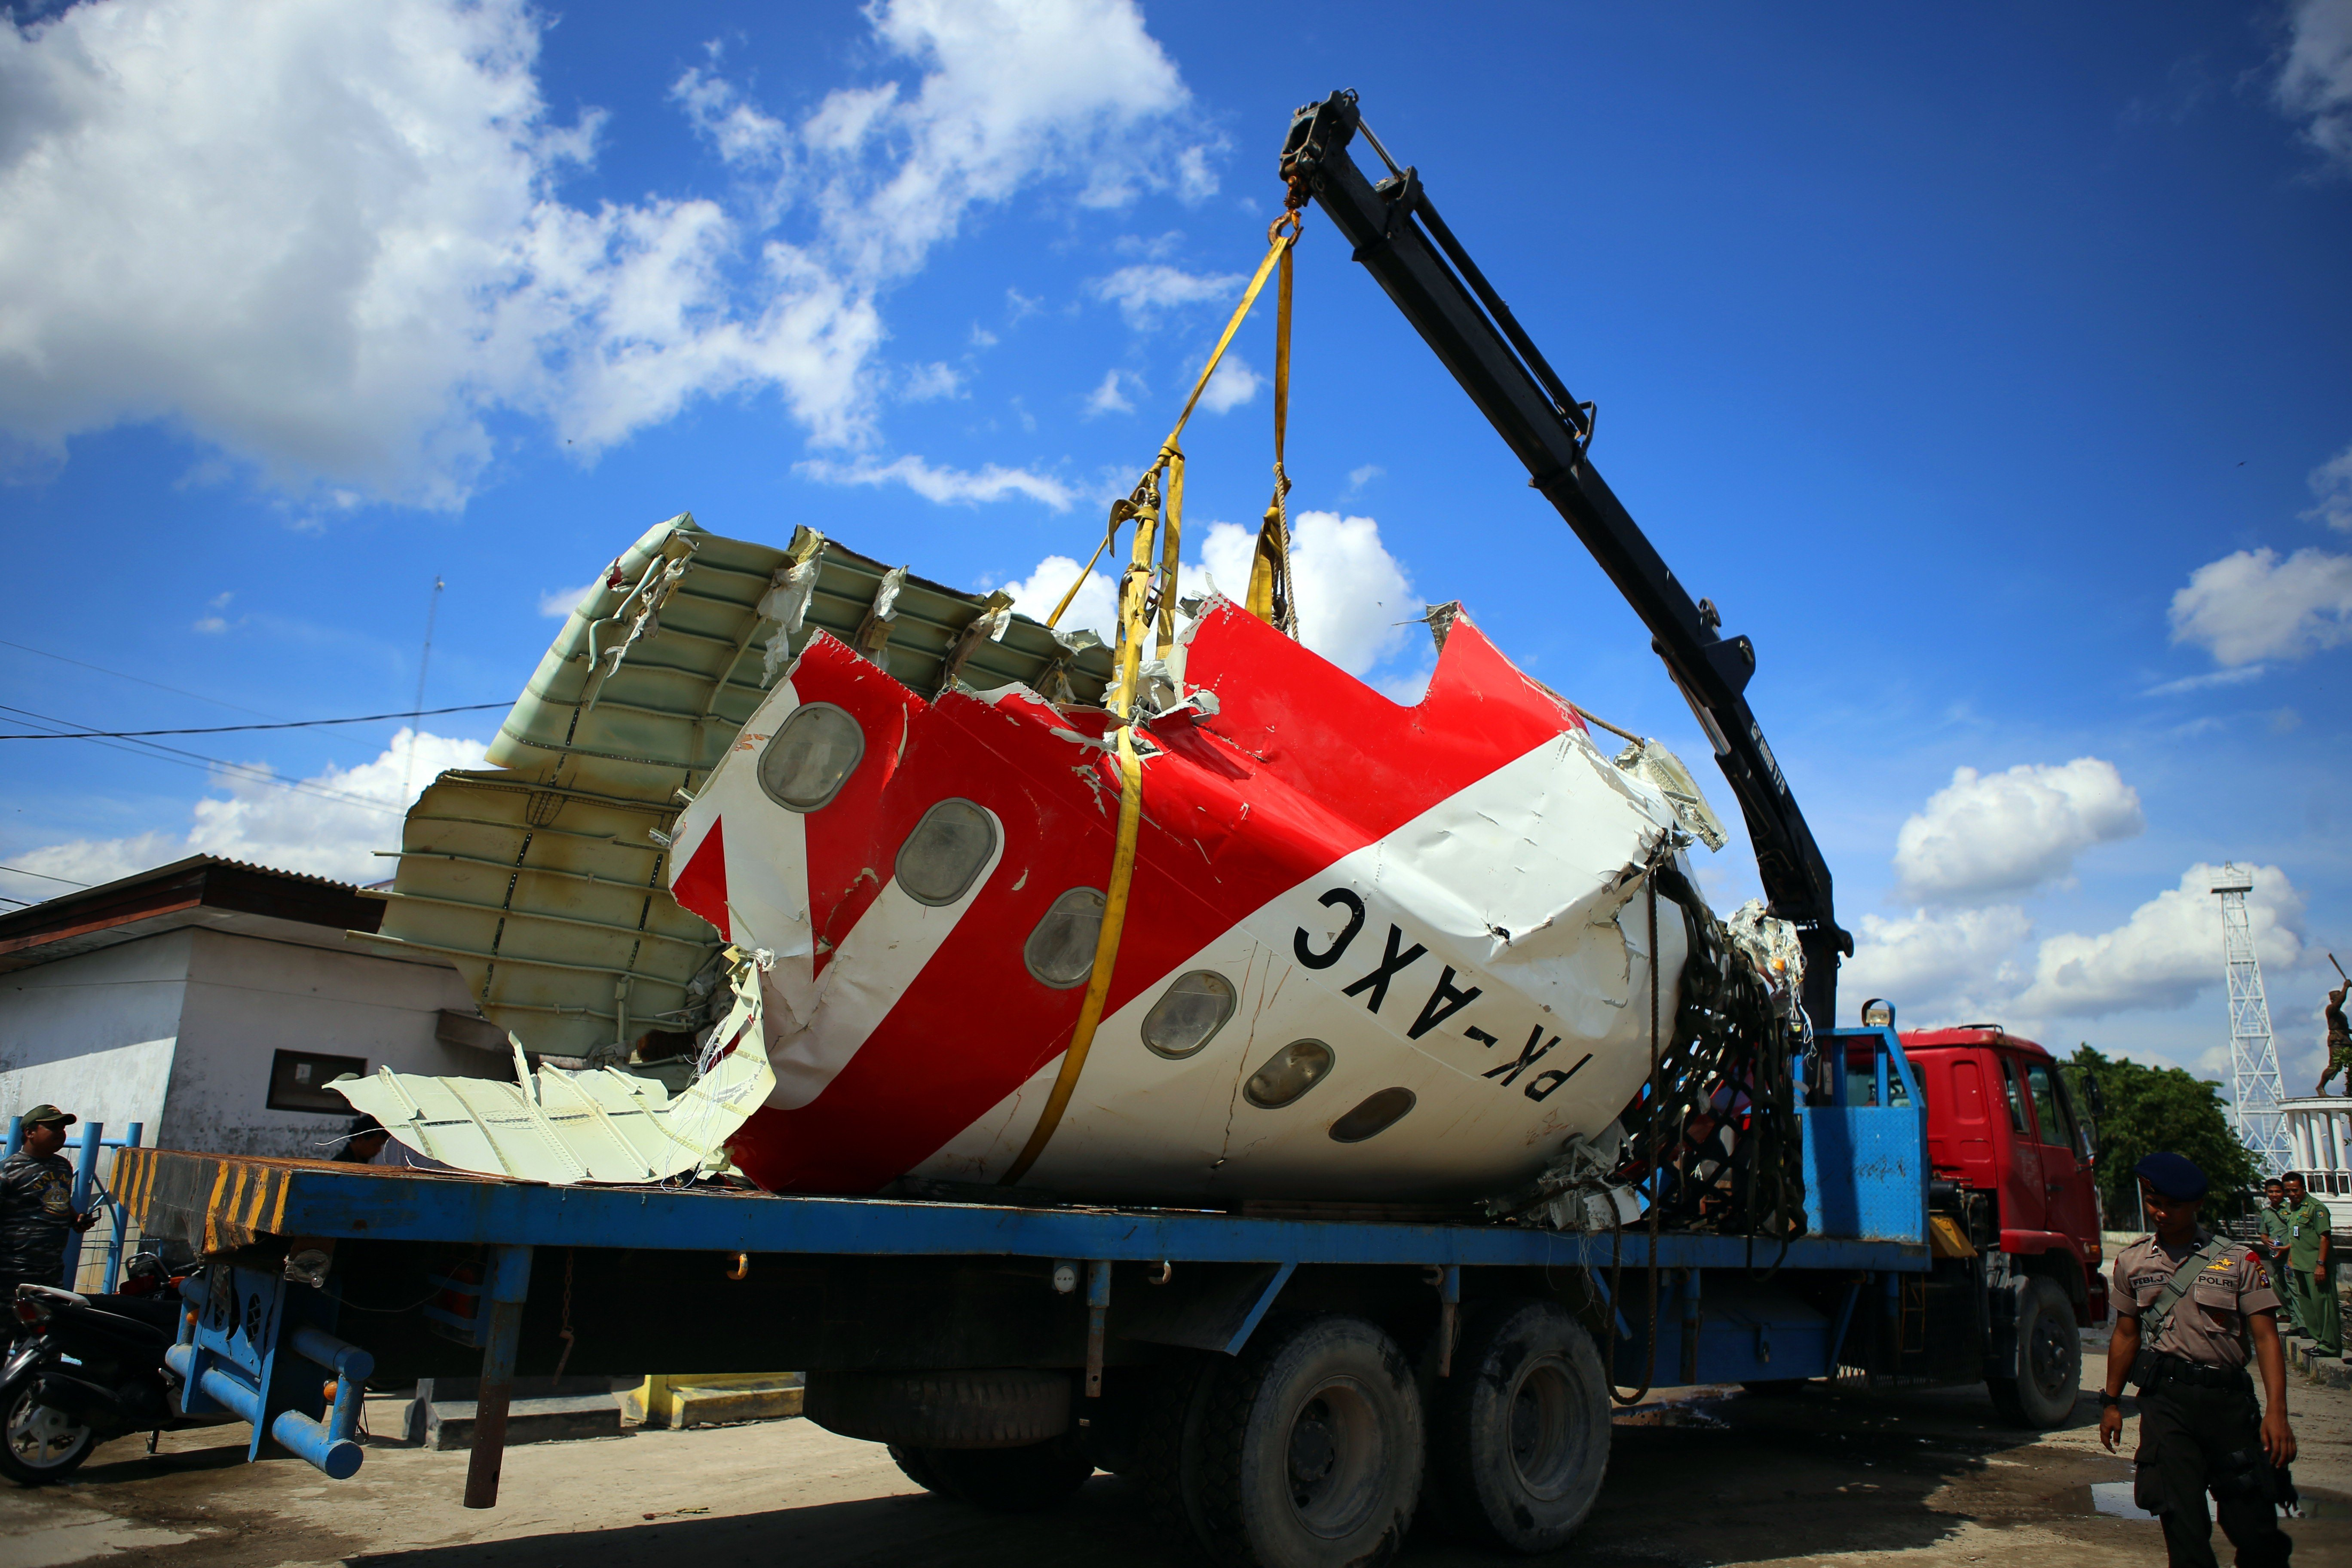 AirAsia aircraft tail is recovered from the Java Sea on Jan. 12, 2015, in Pangkalan Bun, Indonesia